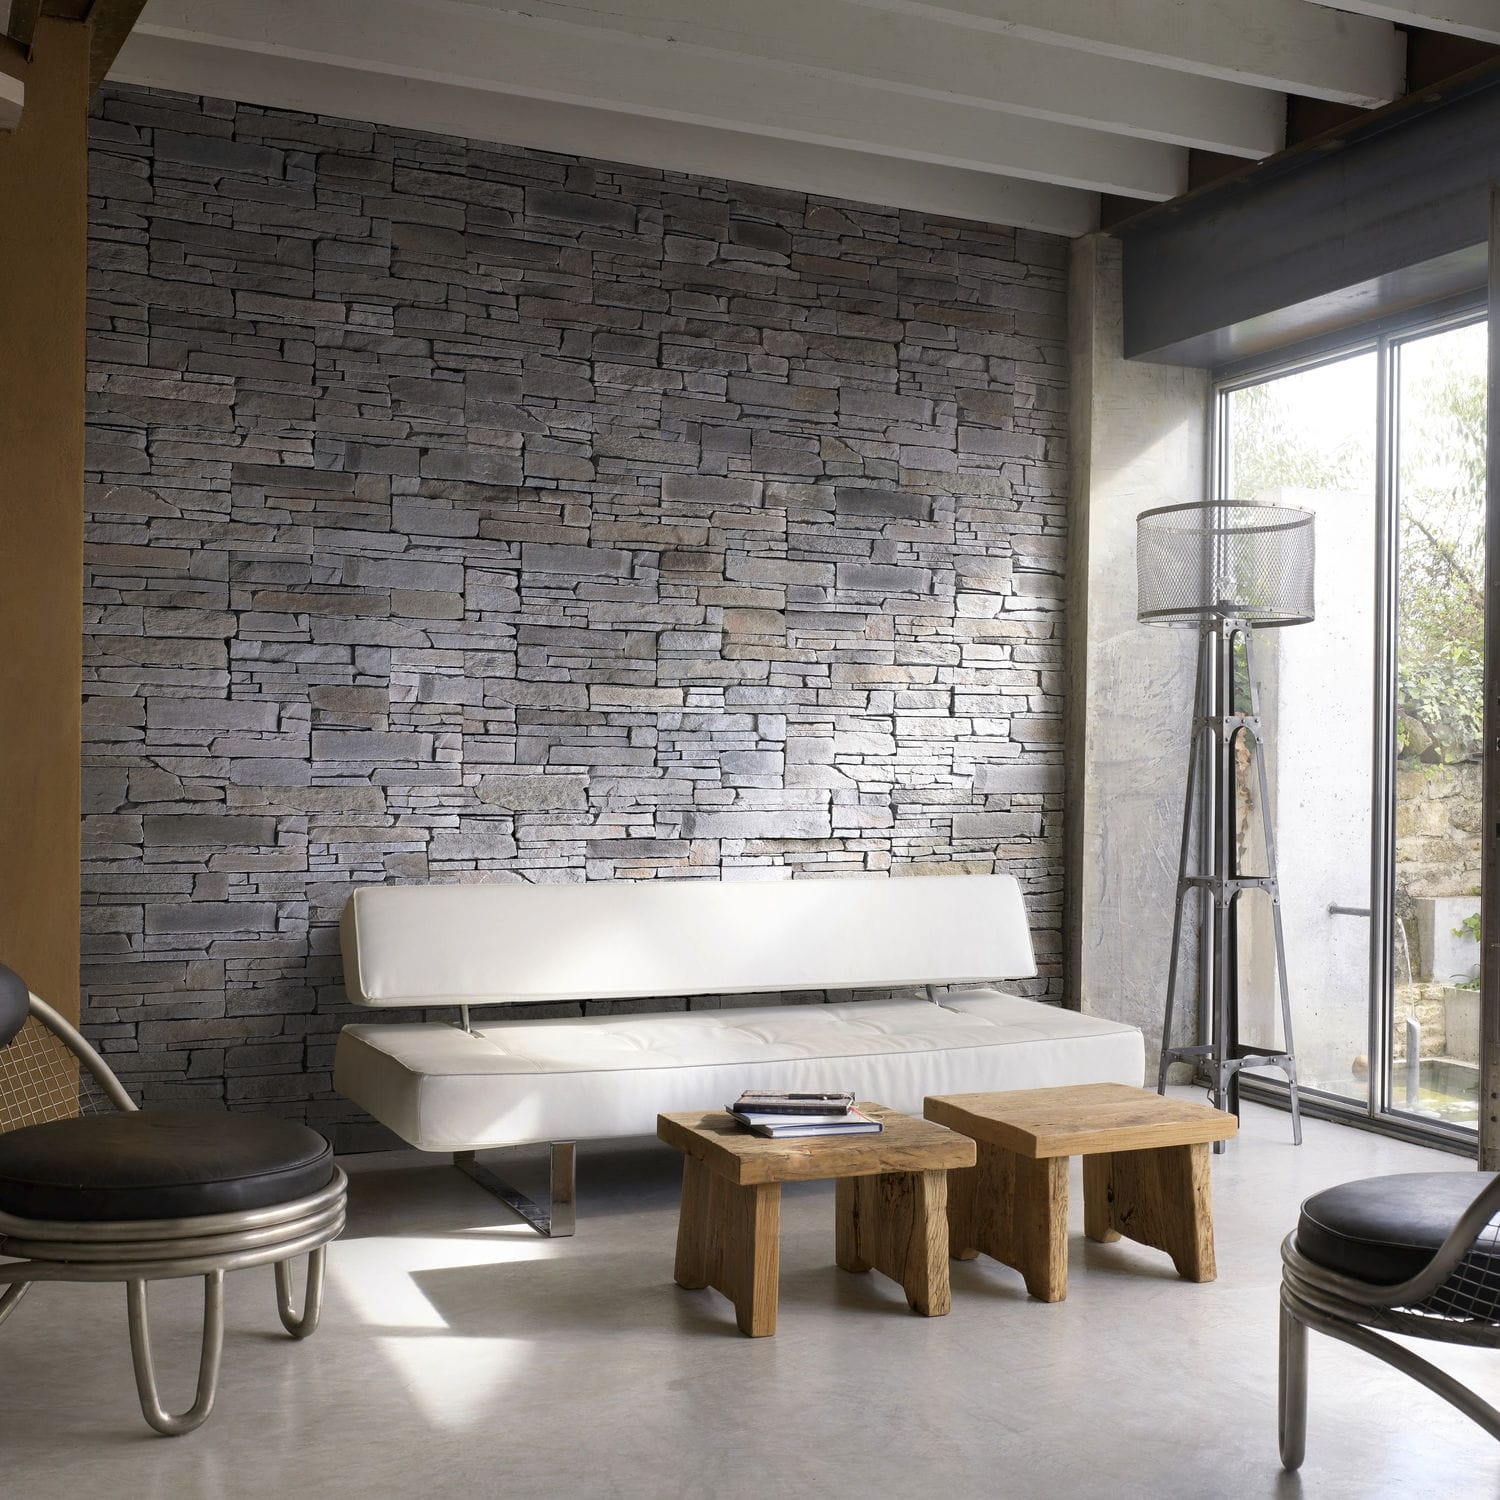 on wall room ideas interior interiors house design white stone and brick